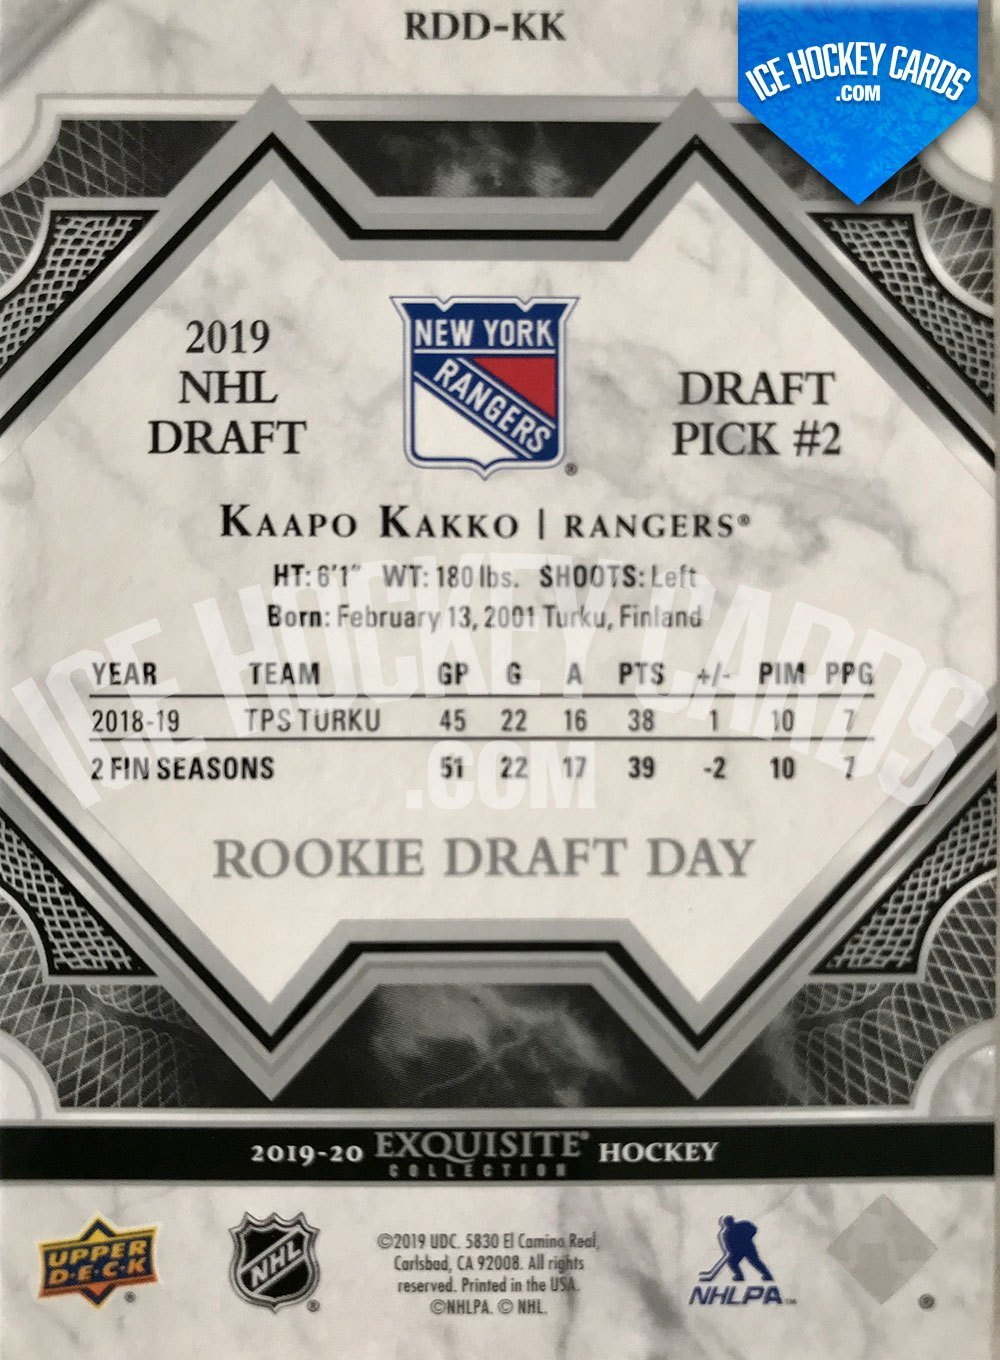 Upper Deck - Exquisite Collection 2019-20 - Kaapo Kakko Rookie Draft Day - 2019 NHL Draft Pick #2 back